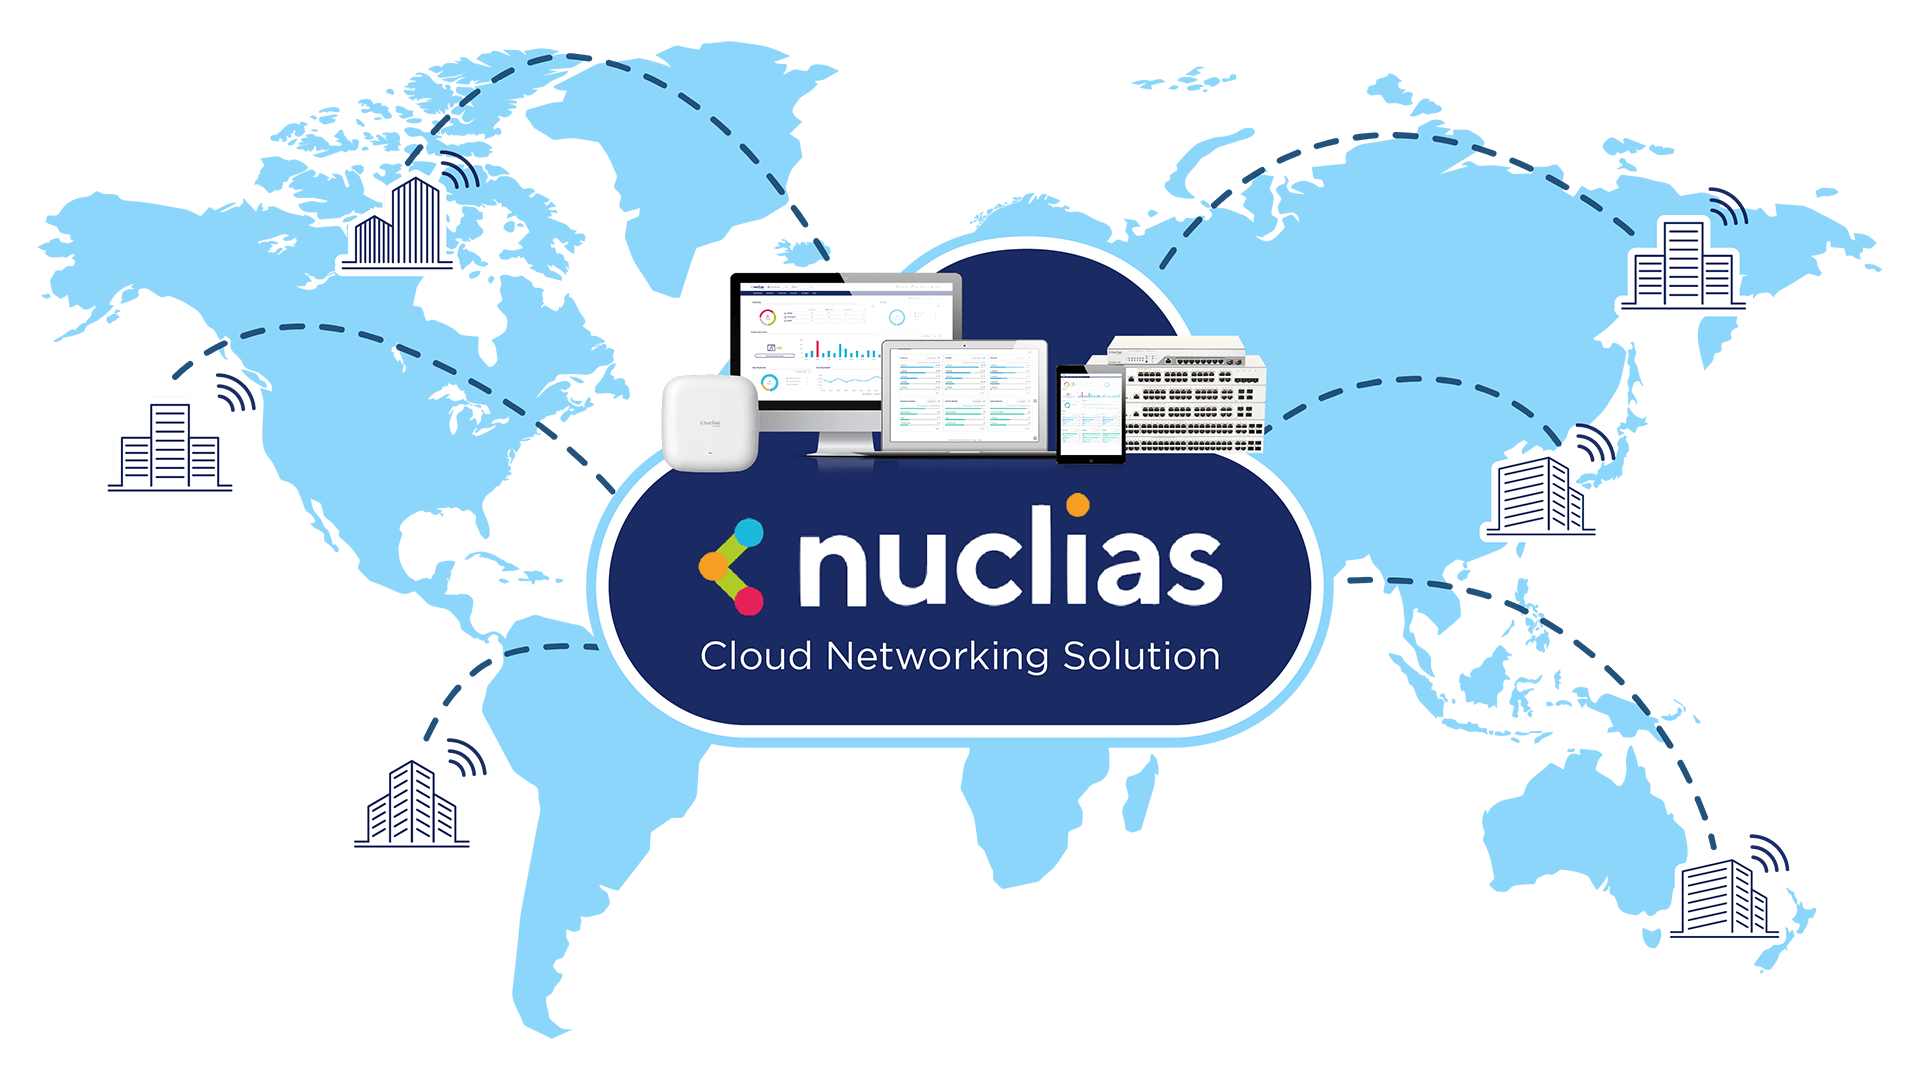 nuclias network